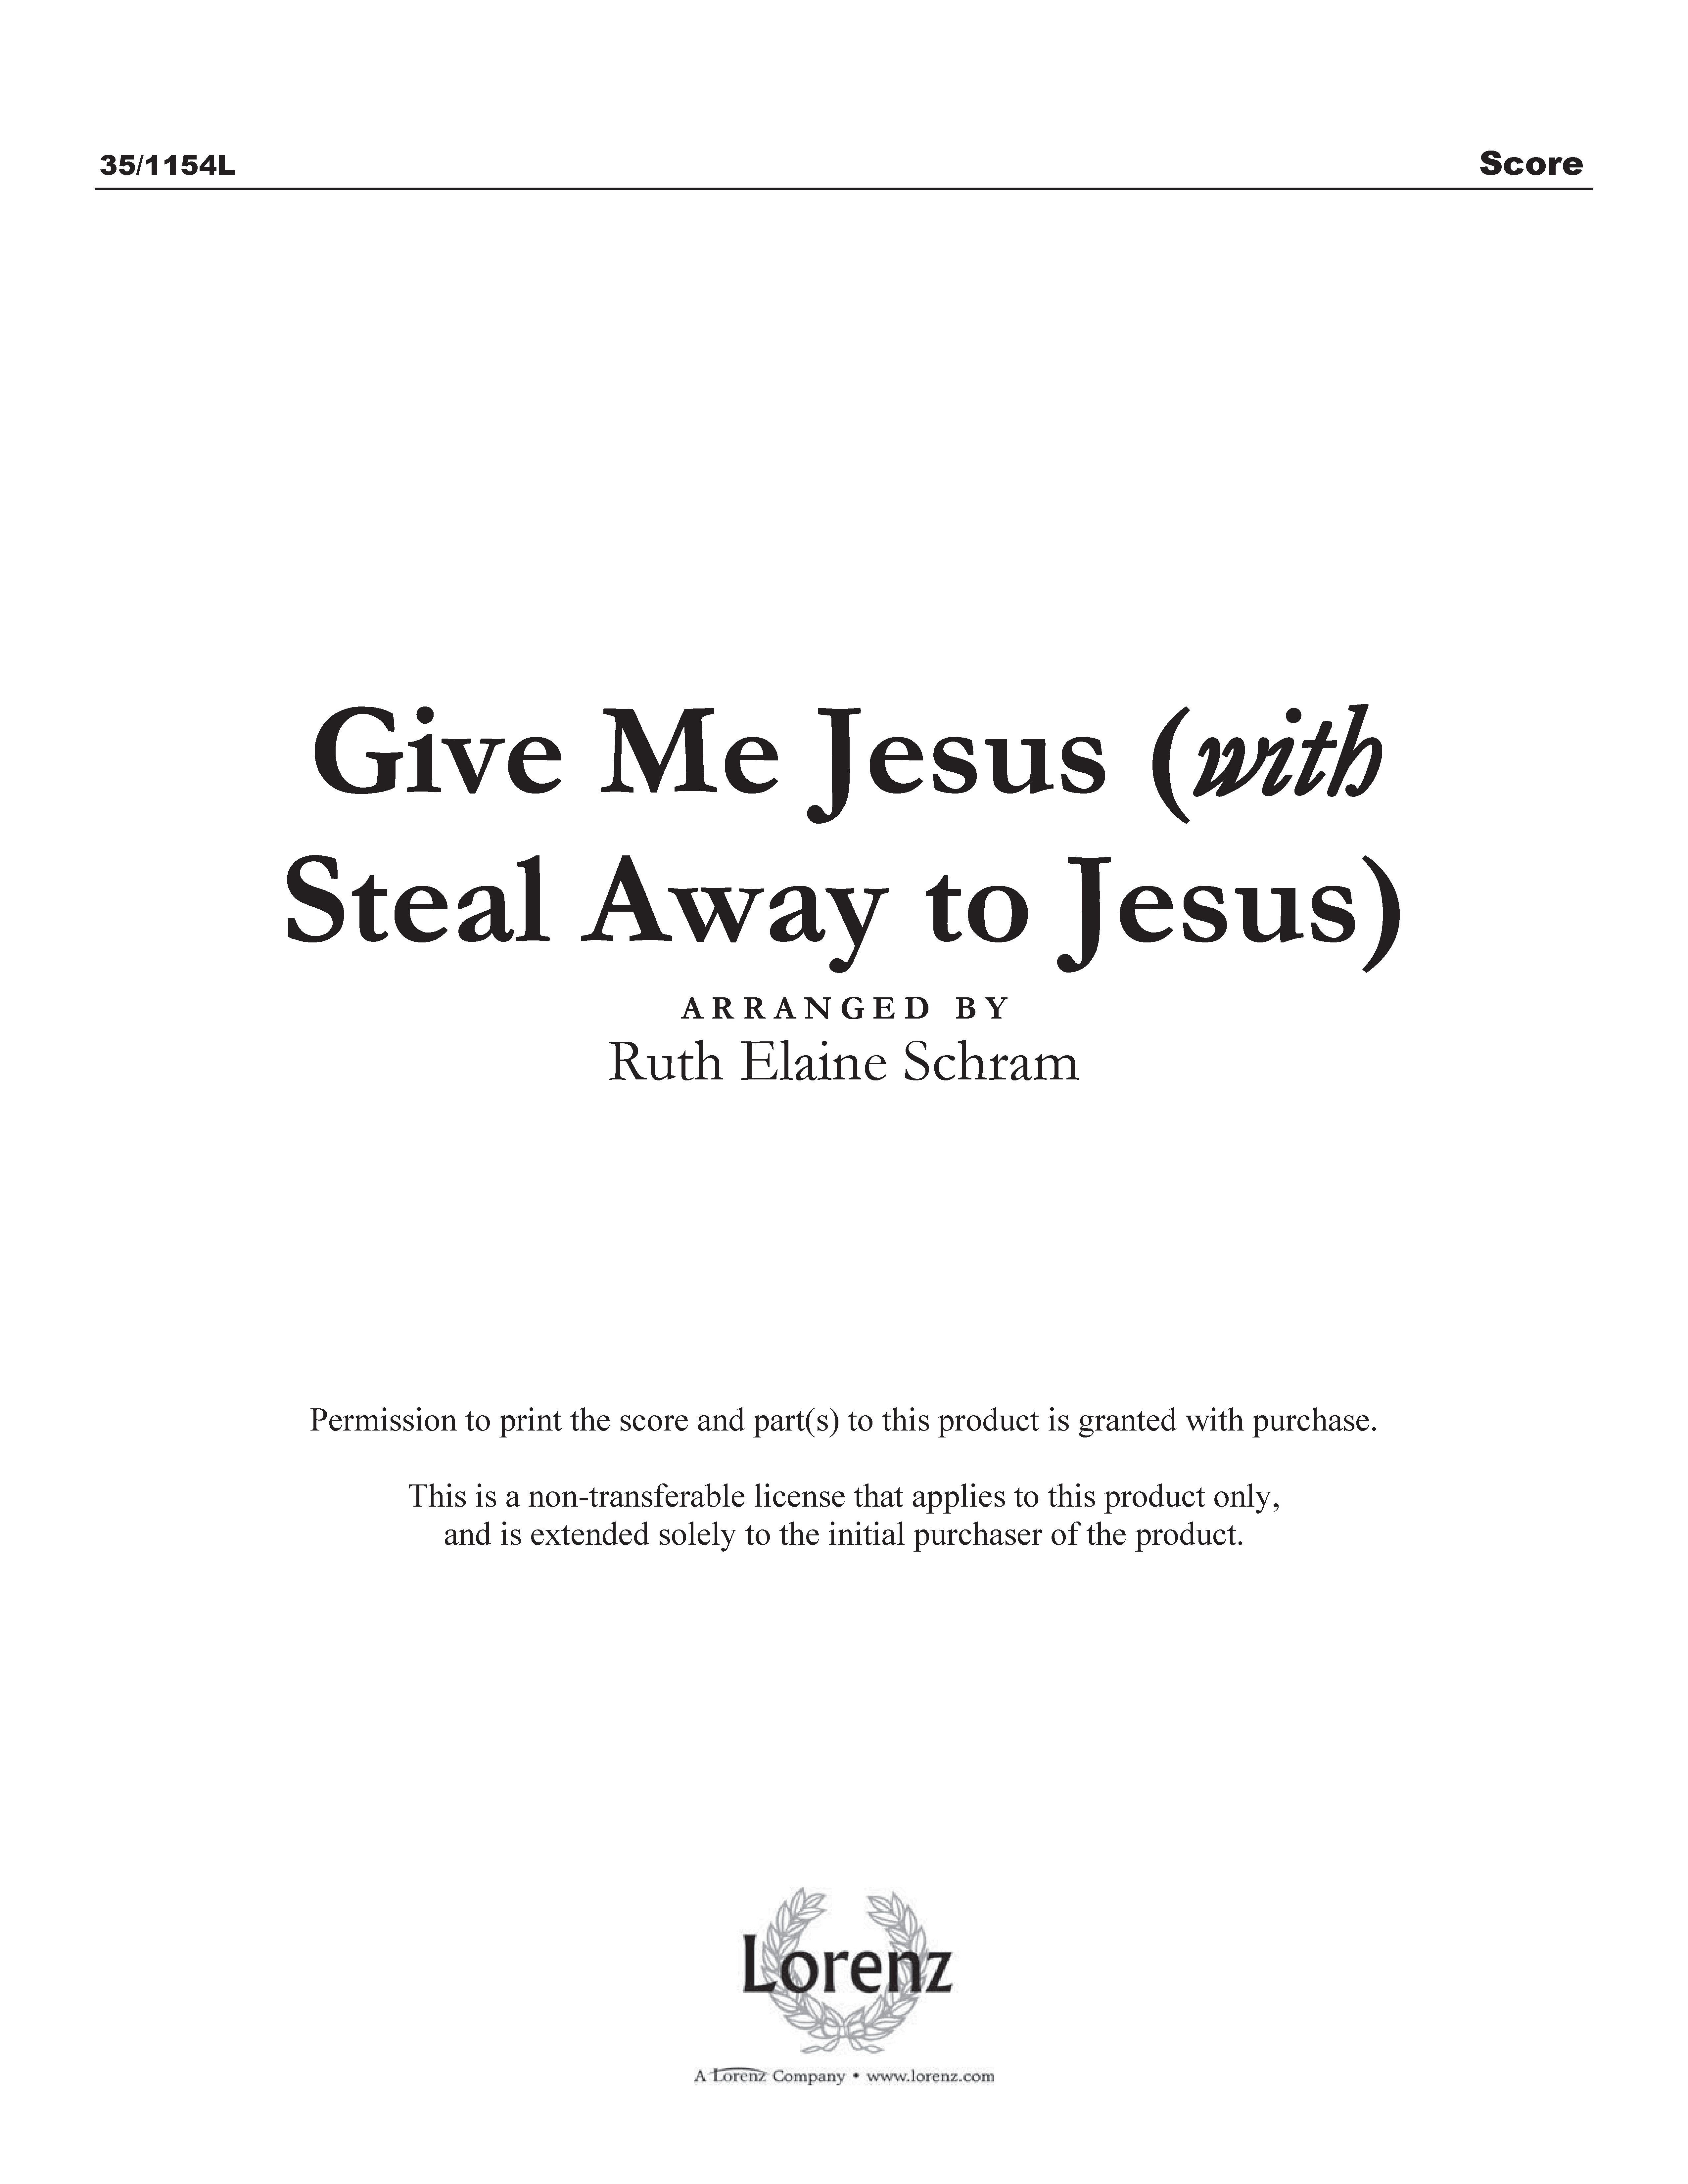 Give Me Jesus with Steal Away to Jesus (Digital Delivery)